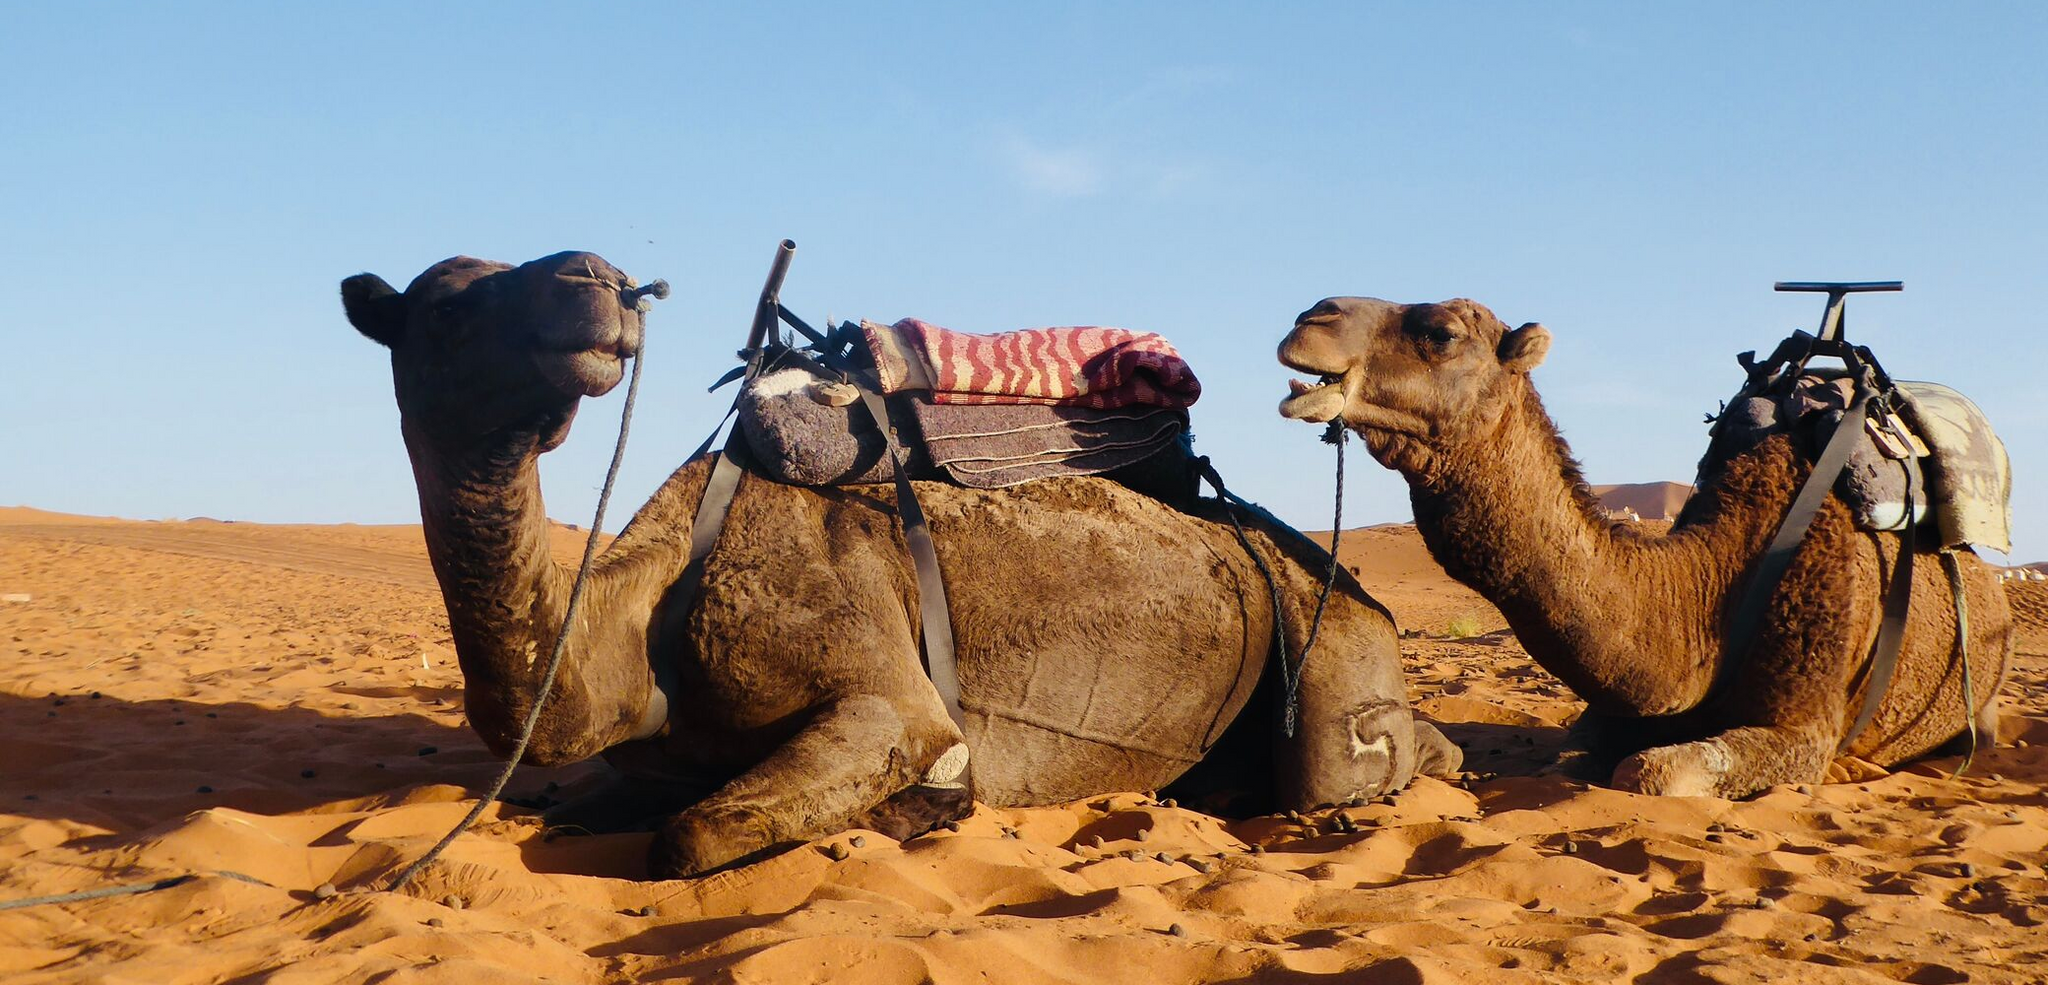 Lost Little One Travel Diaries. A guide to merzouga